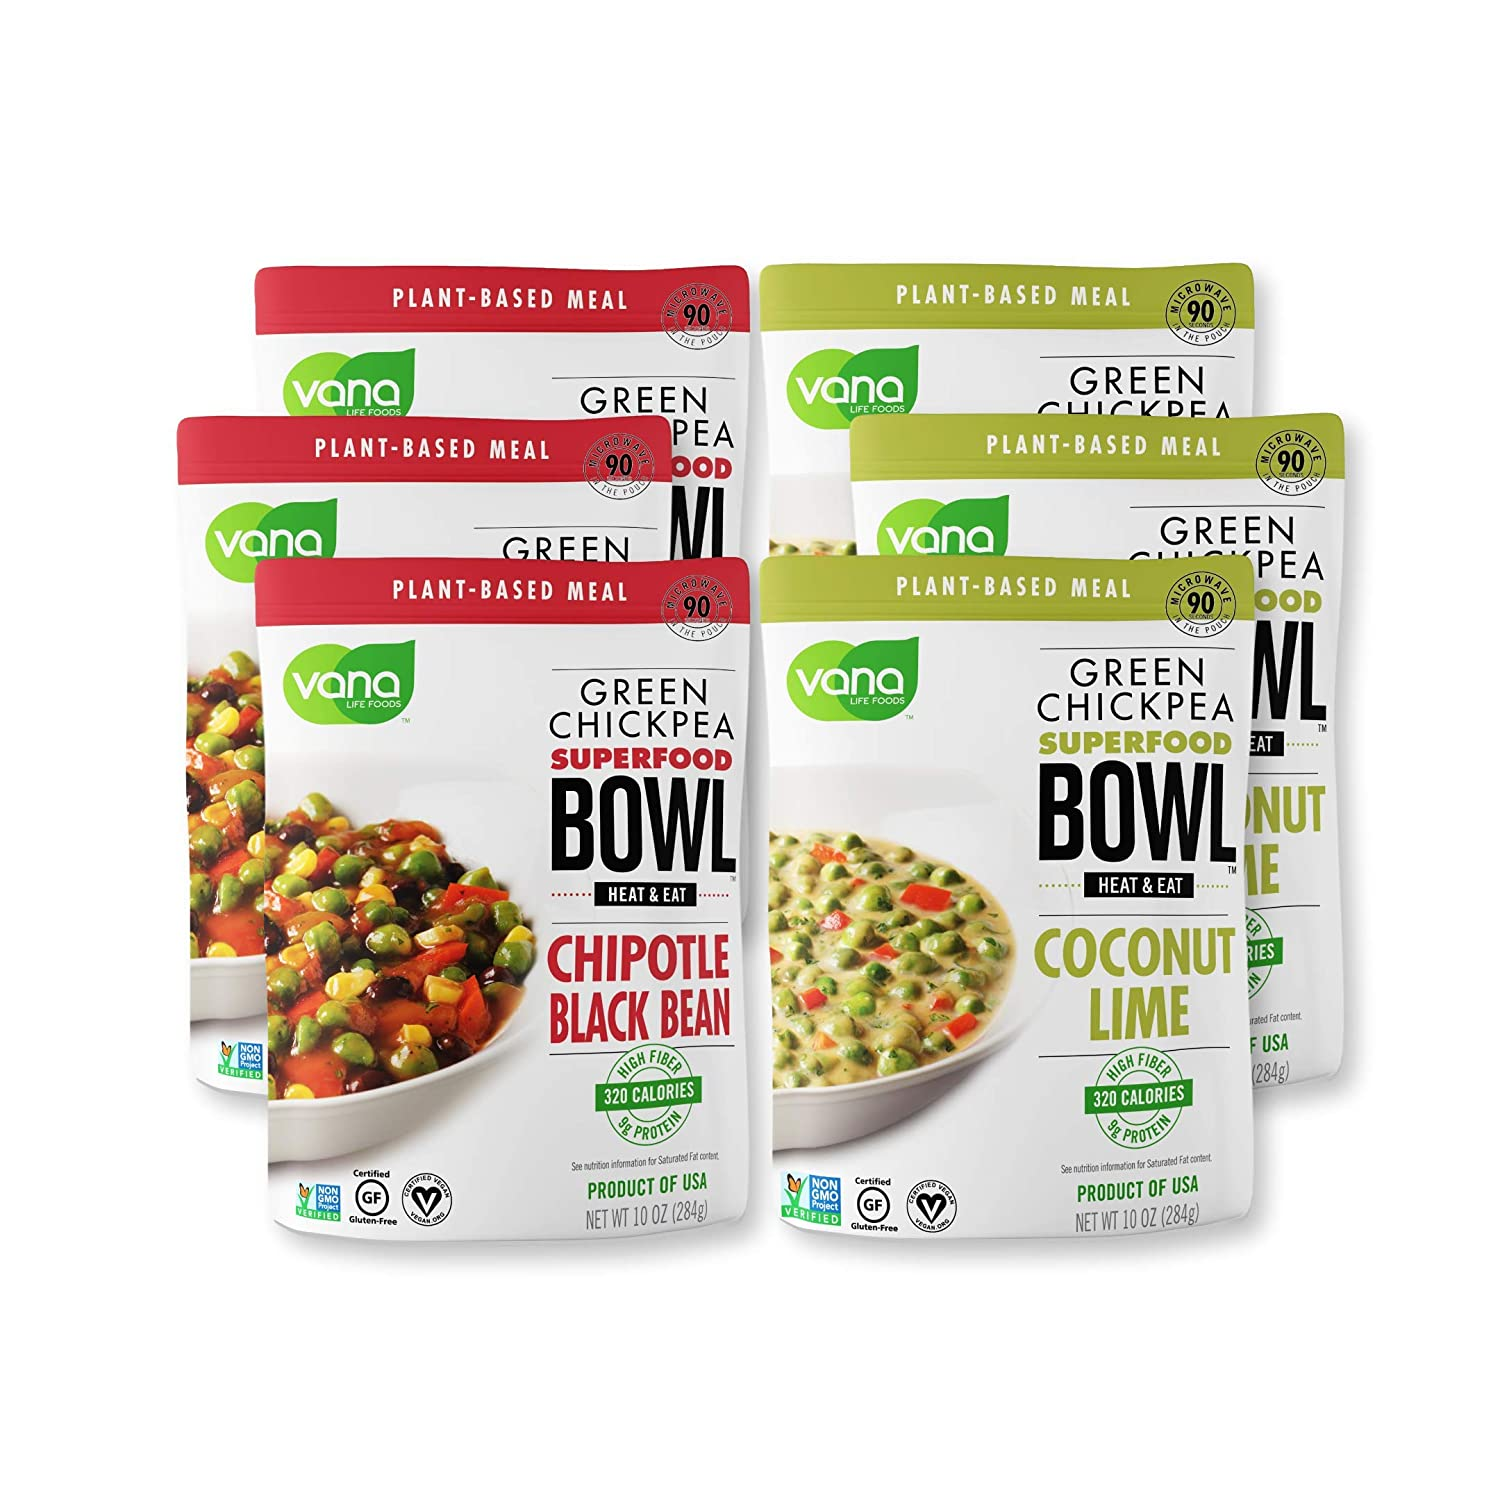 Vana Life's Foods 100% Natural Plant based SuperFood Bowl with Chipotle and Black Bean & Coconut Lime - Emergency Instant Protein Meals | Gluten Free, Vegan Free, Non-GMO - Product of The USA (Pack of 6)